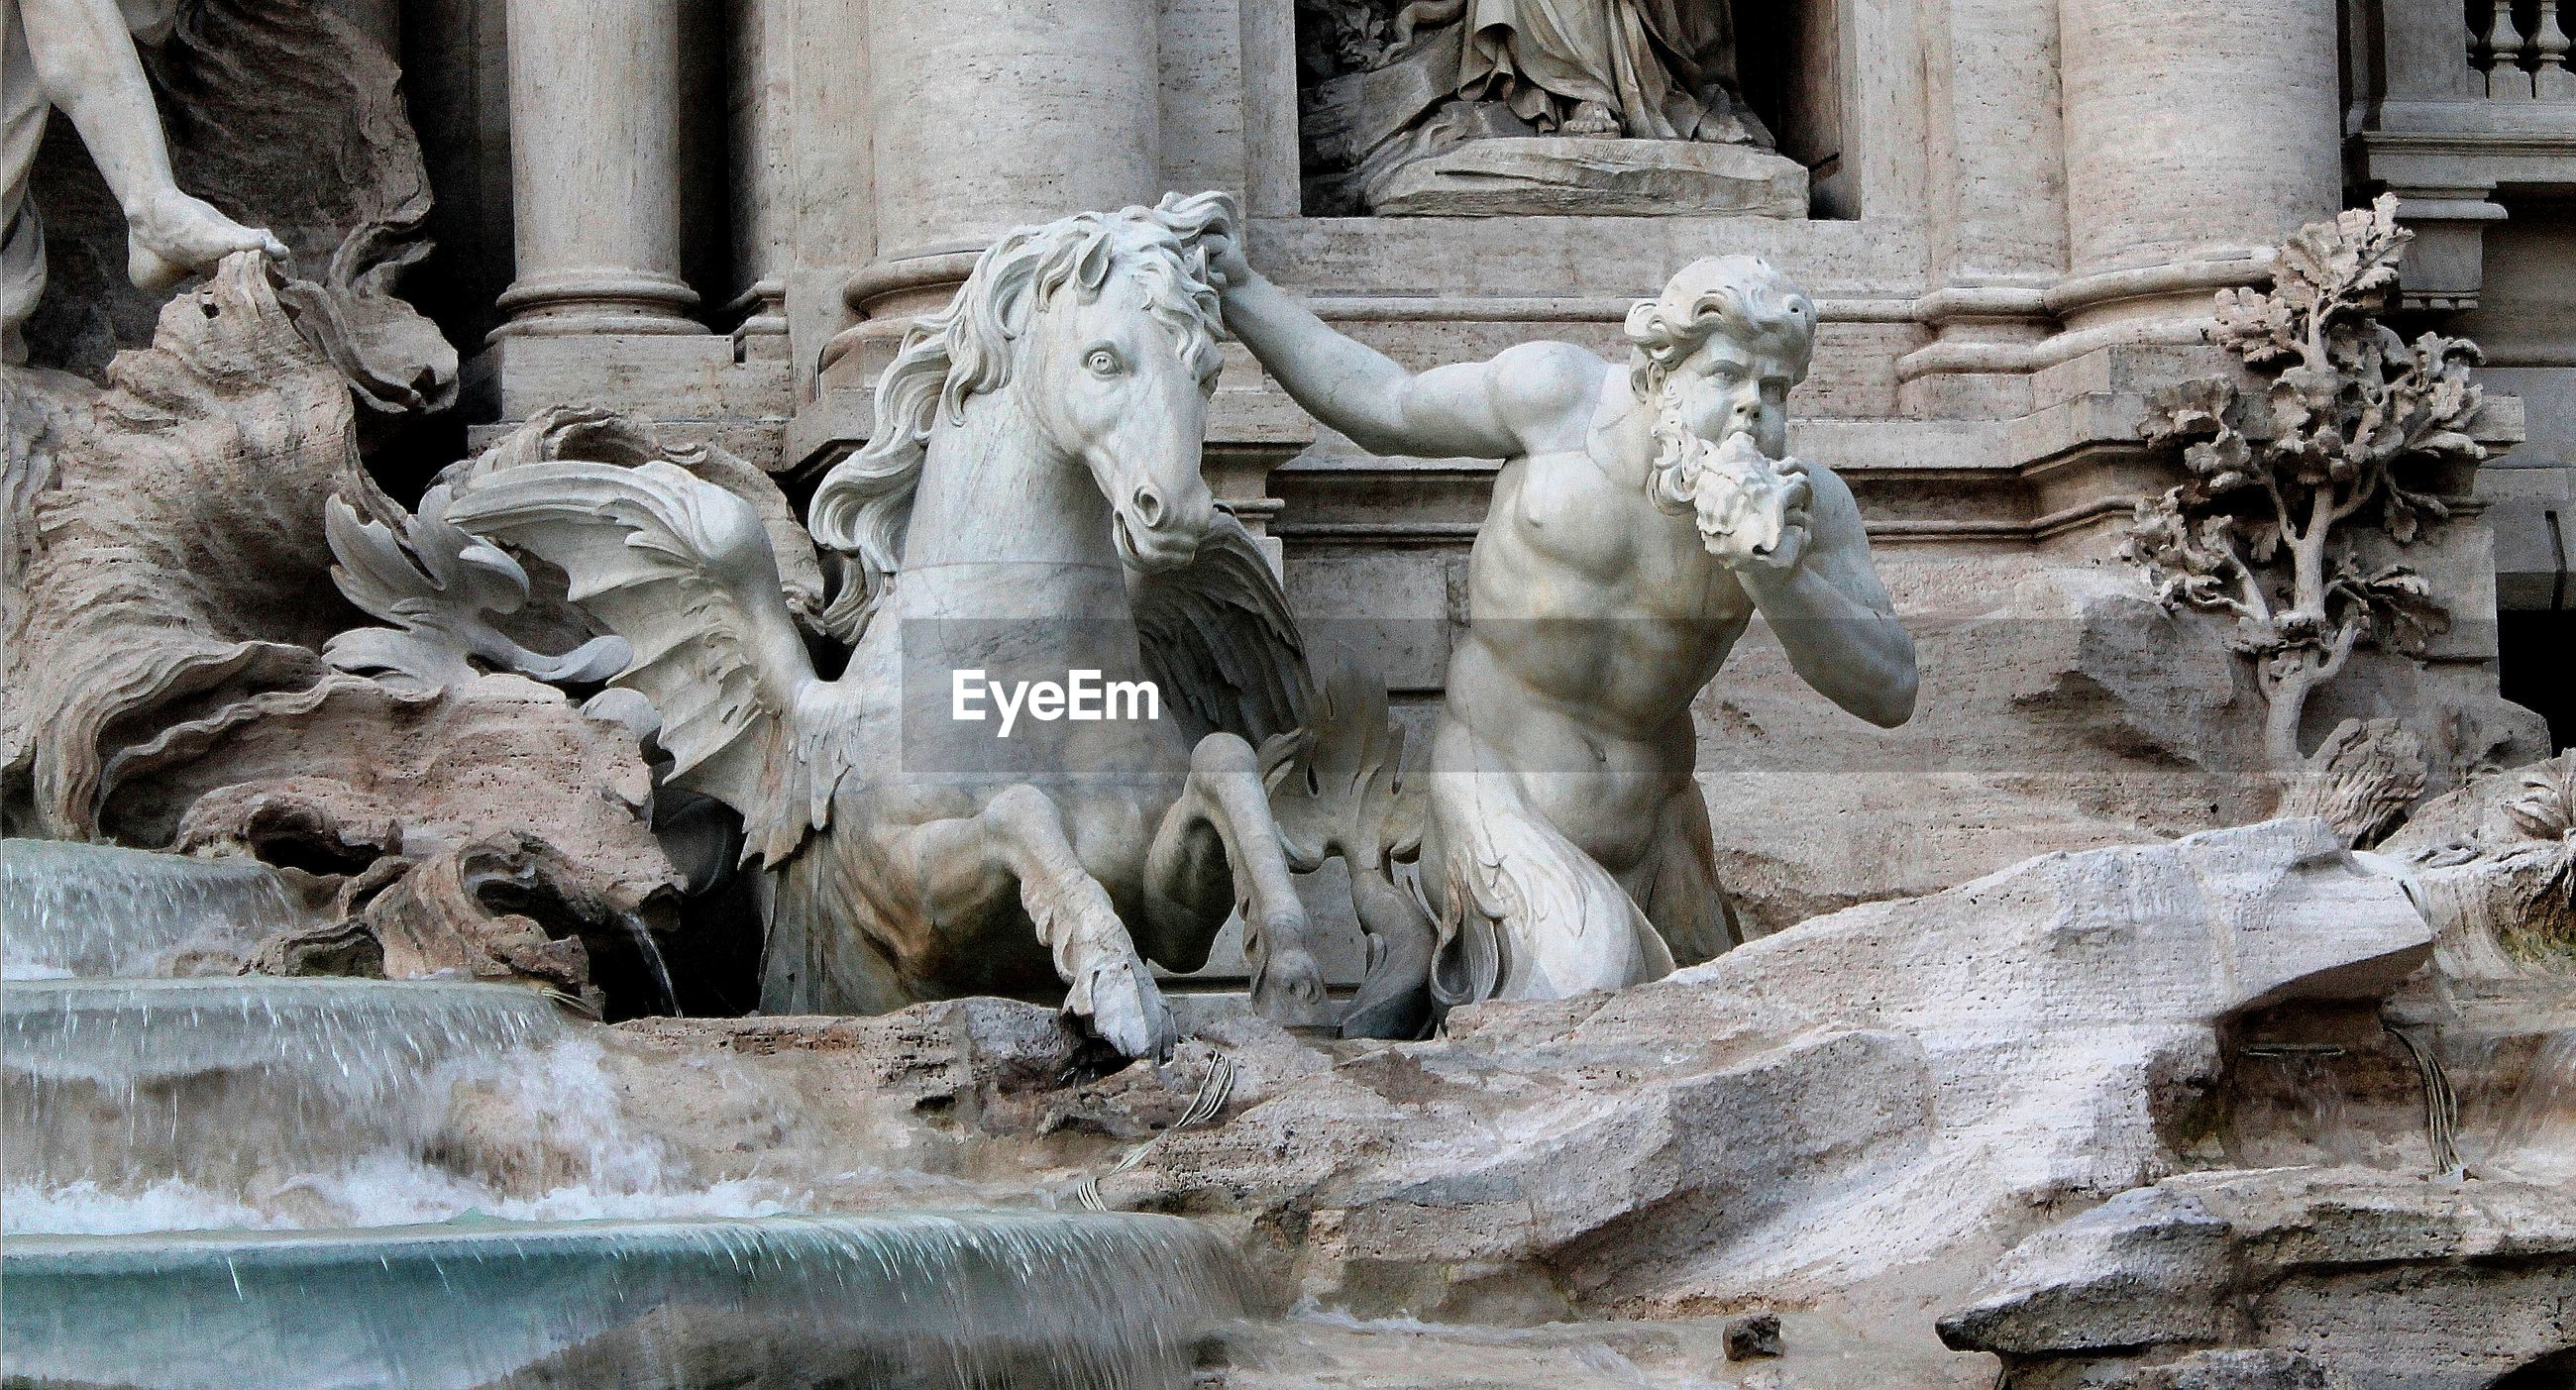 Detail of the trevi fountain, the largest baroque fountain in rome, the italian capital.